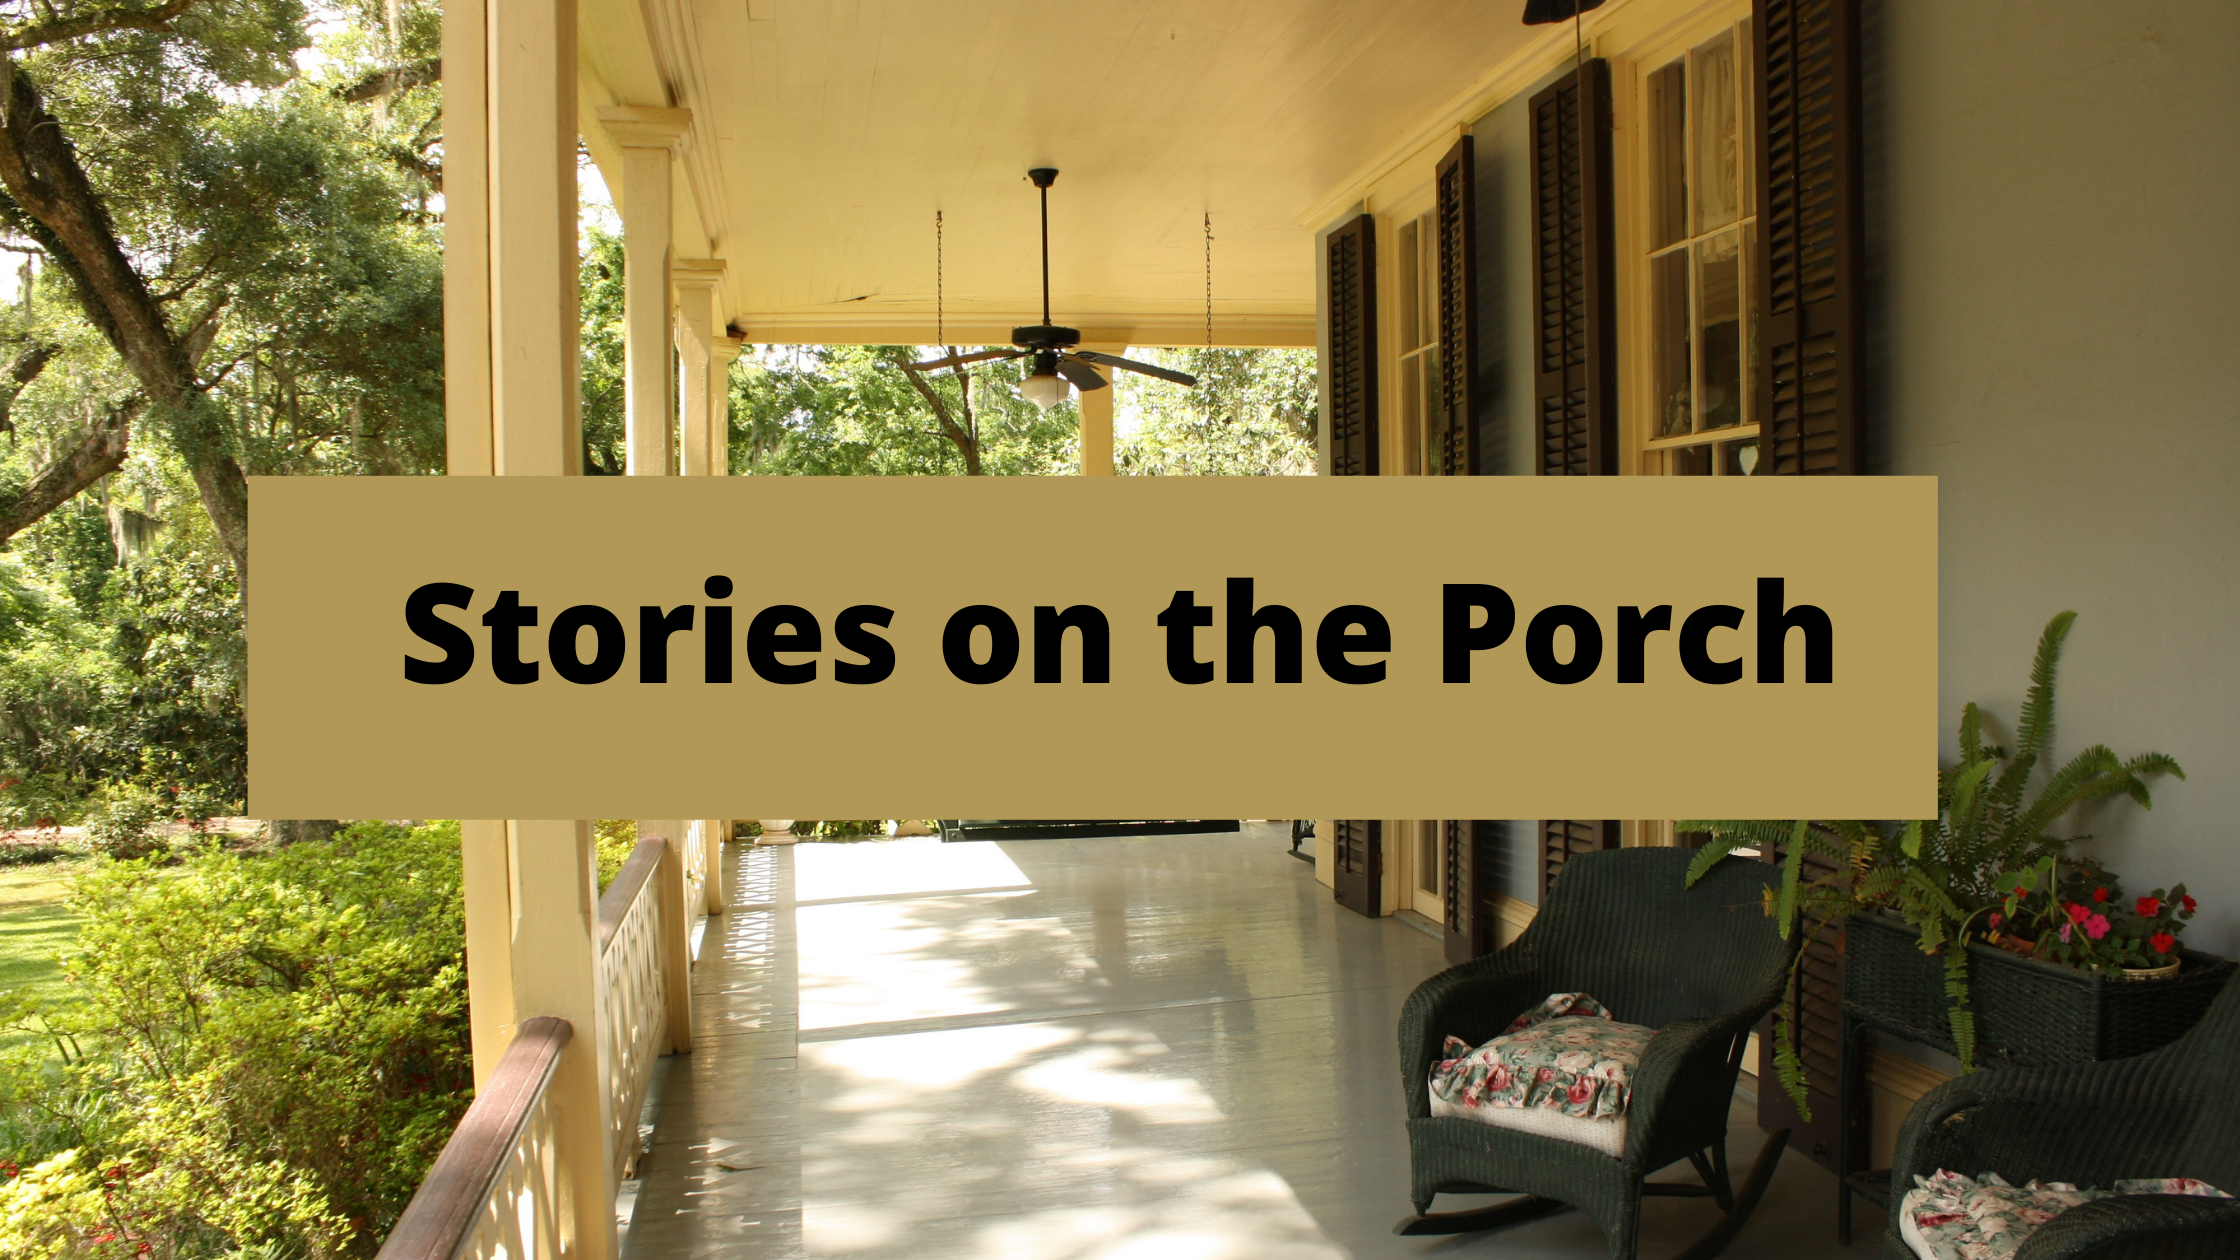 Stories on the Porch, 11am